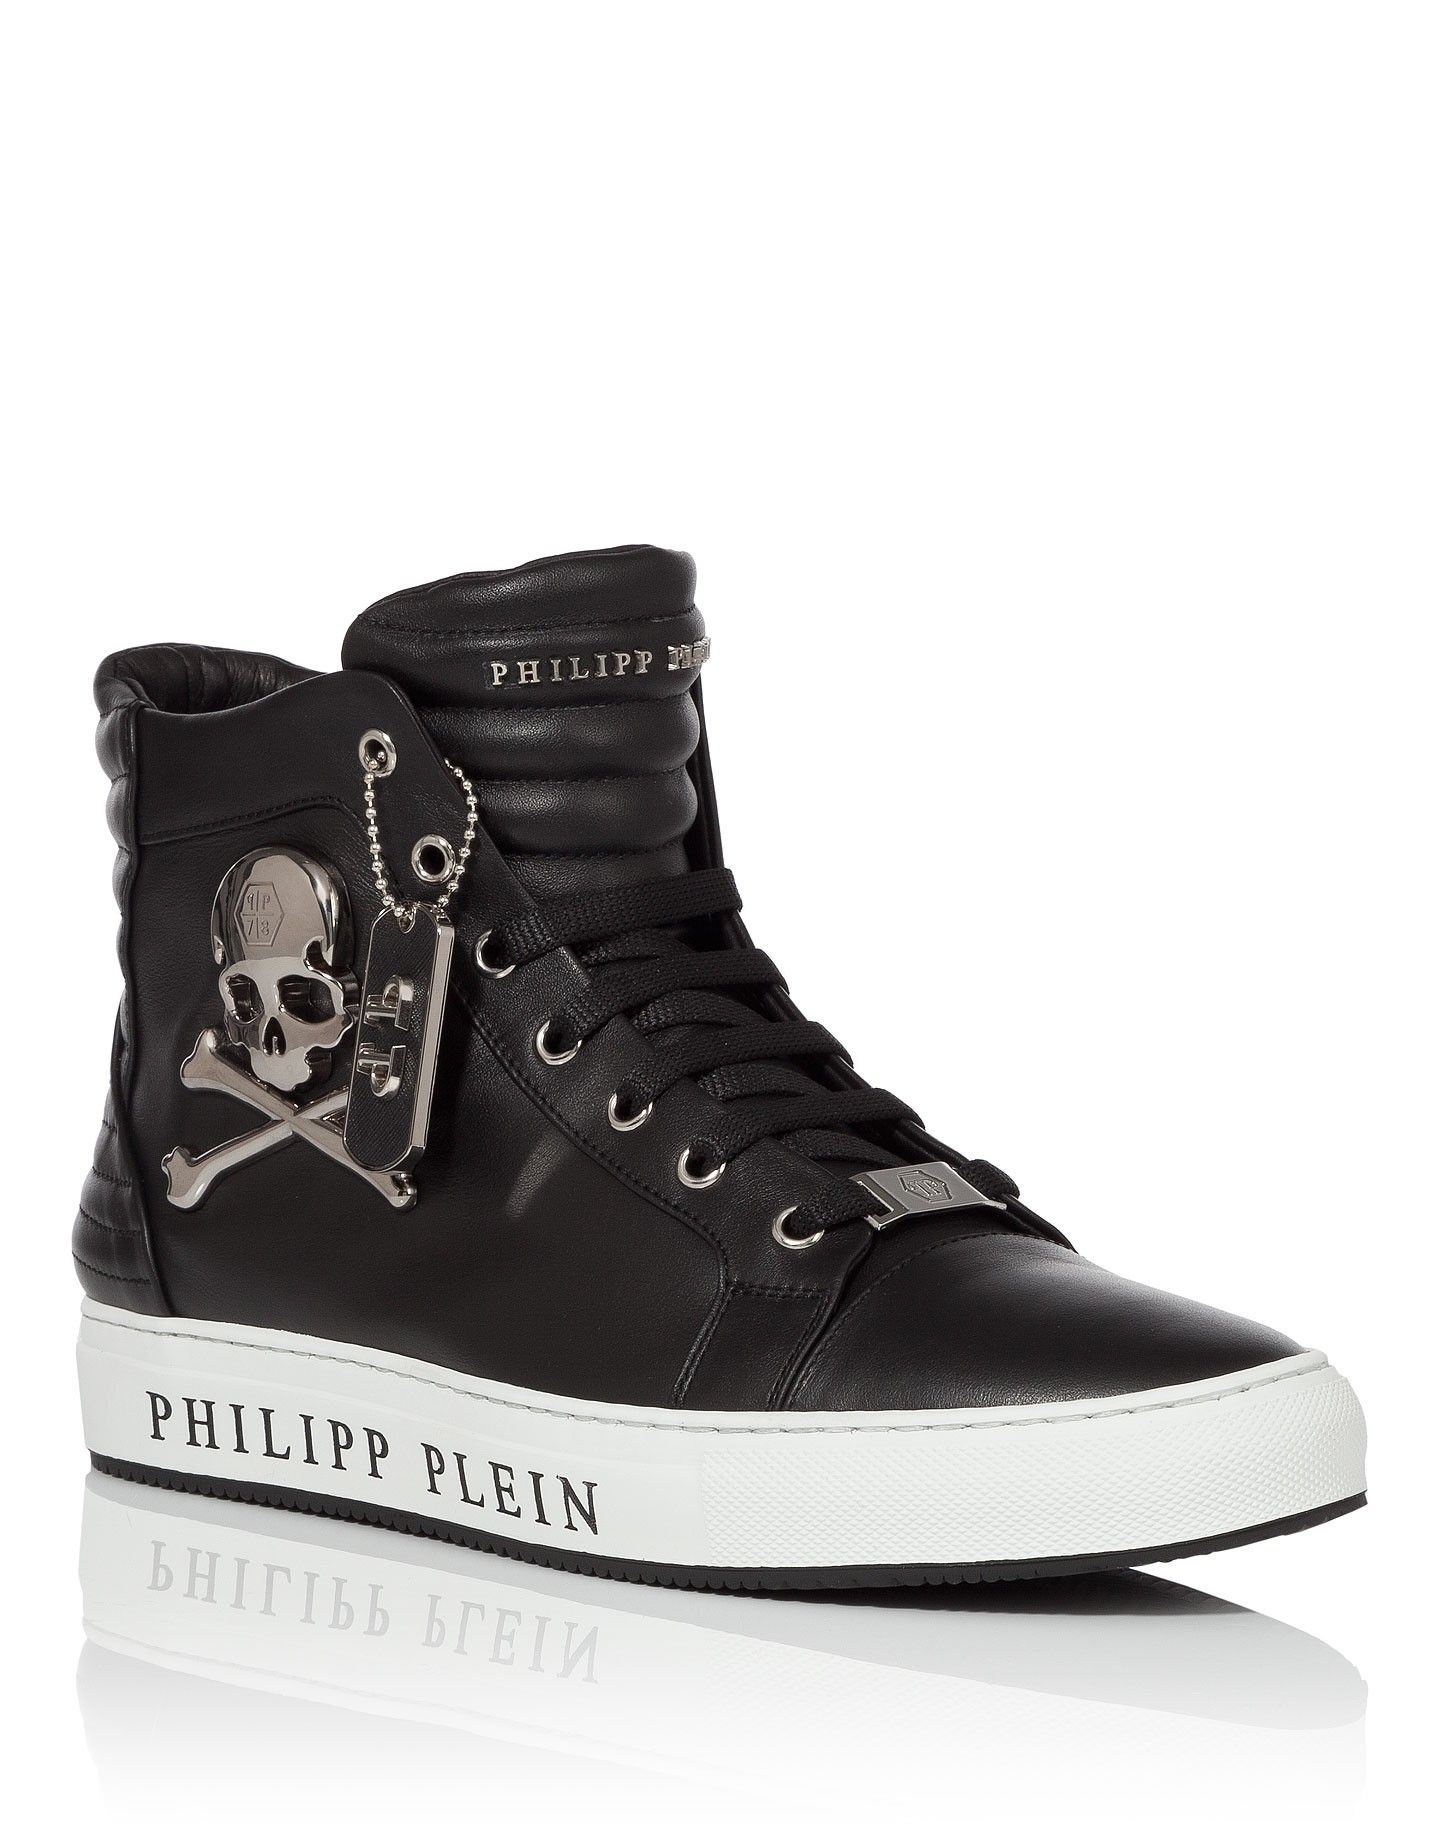 PHILIPP PLEIN HIGH SNEAKER